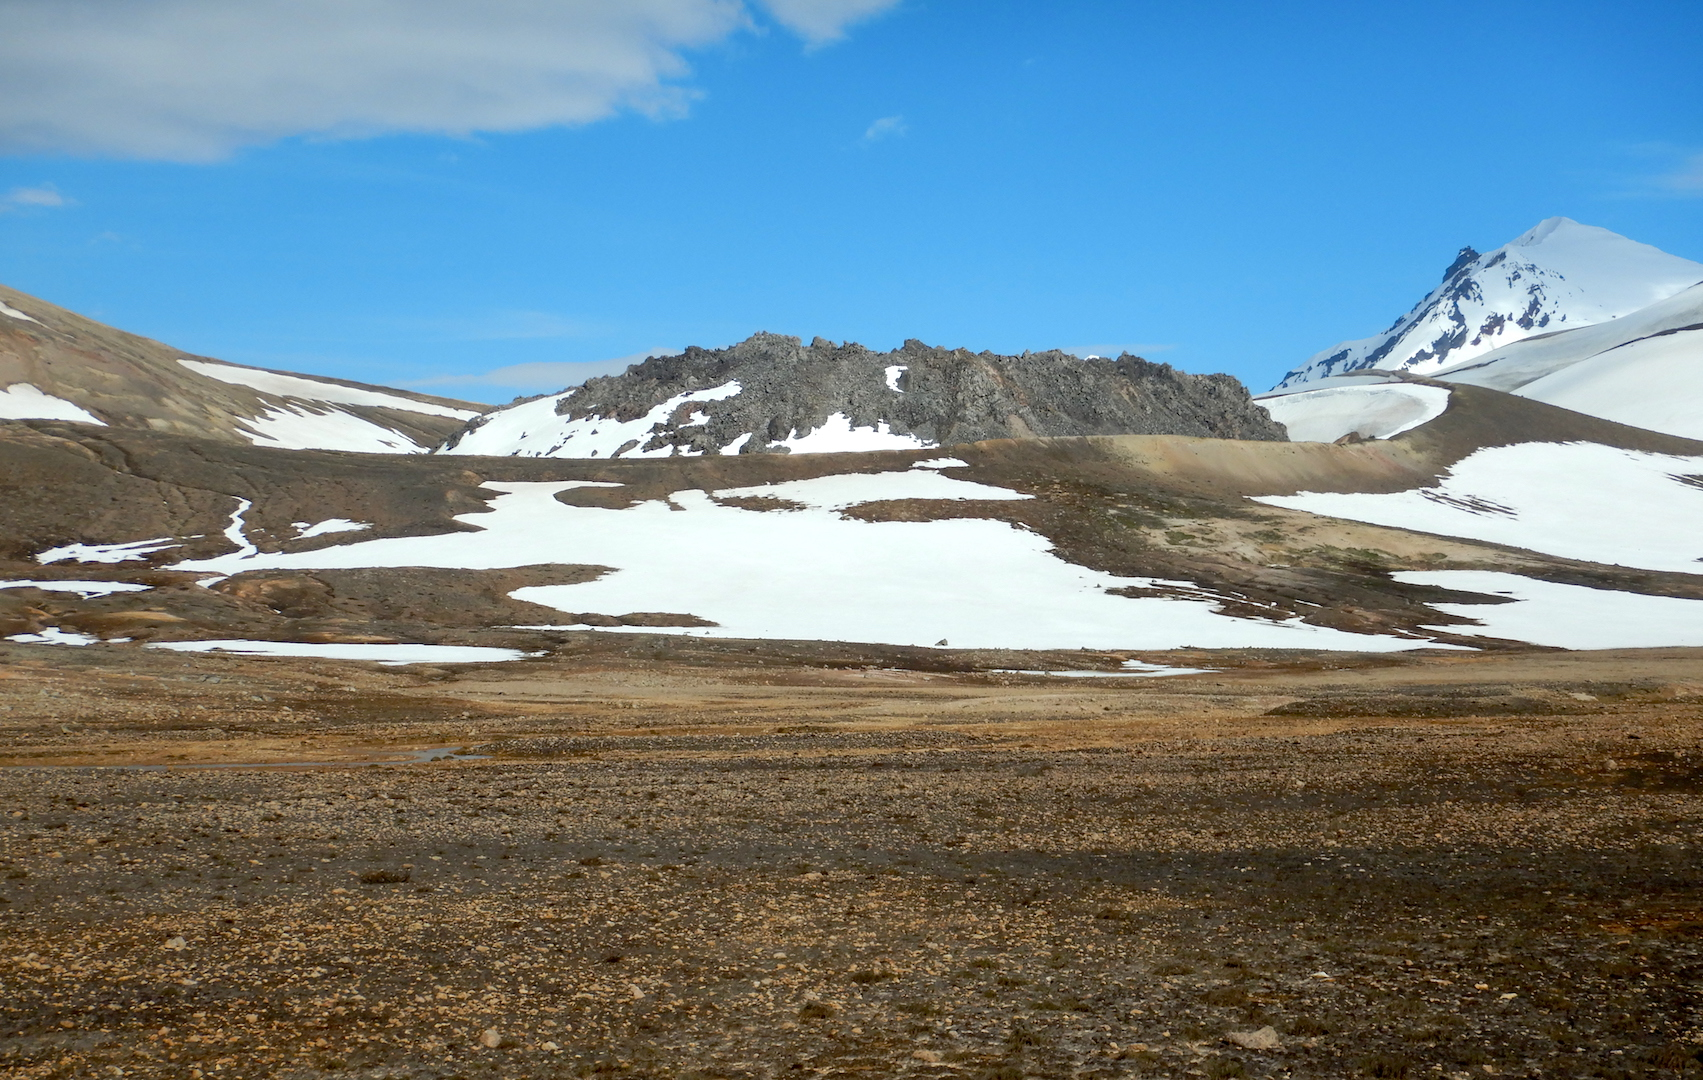 view of pumice-covered flats and snow fields dark-colored lava dome at center